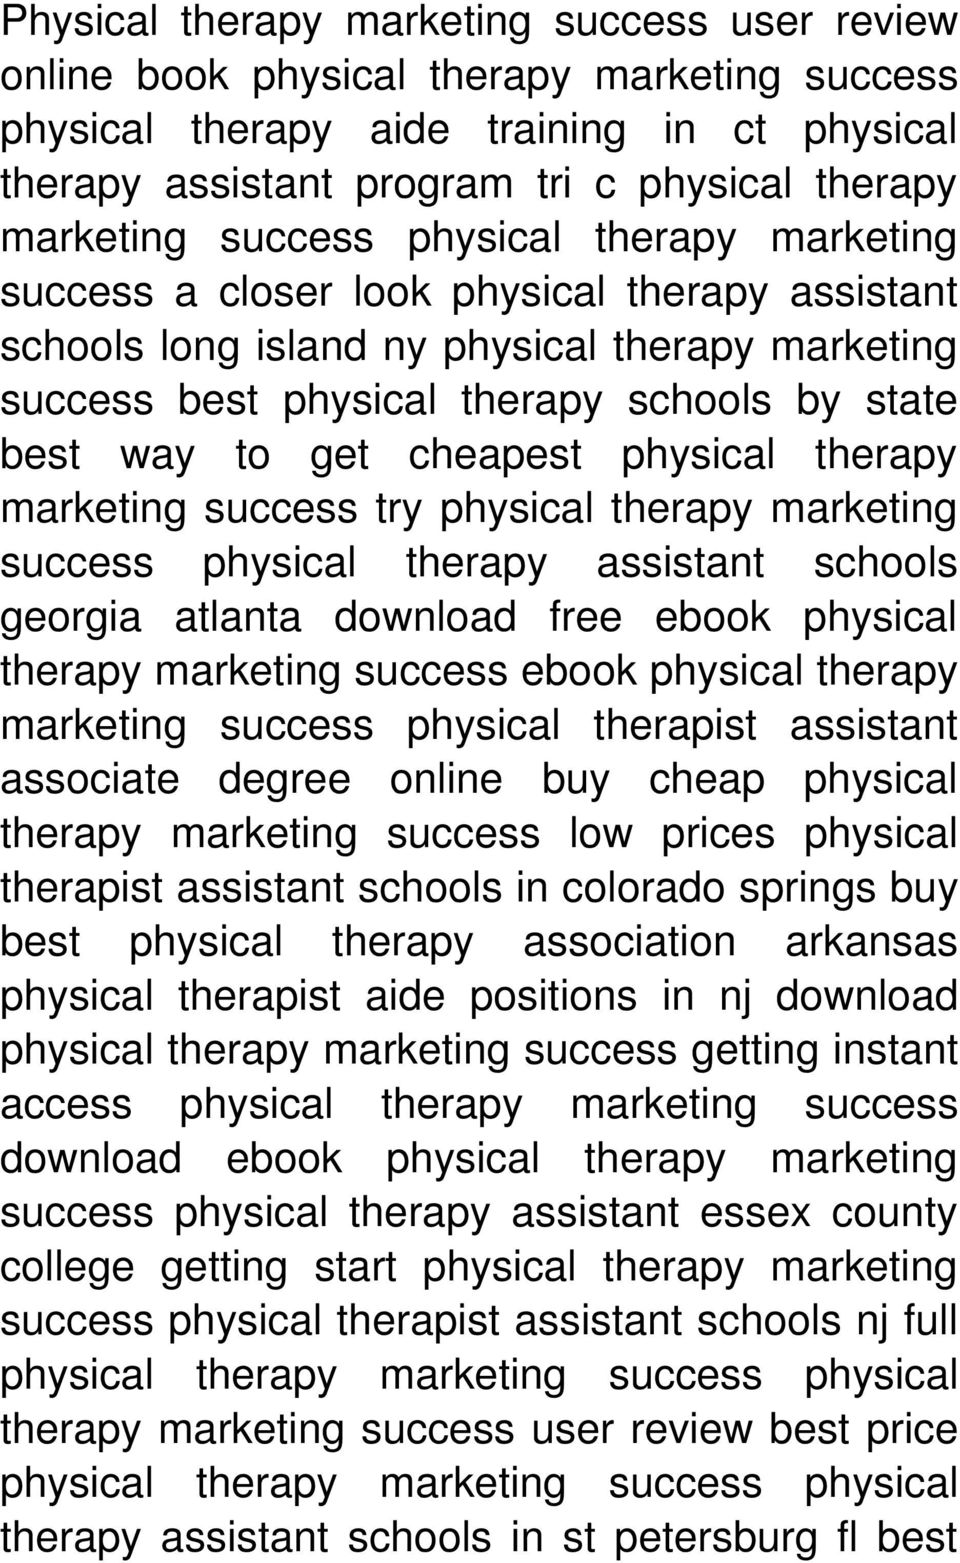 cheapest physical therapy marketing success try physical therapy marketing success physical therapy assistant schools georgia atlanta download free ebook physical therapy marketing success ebook